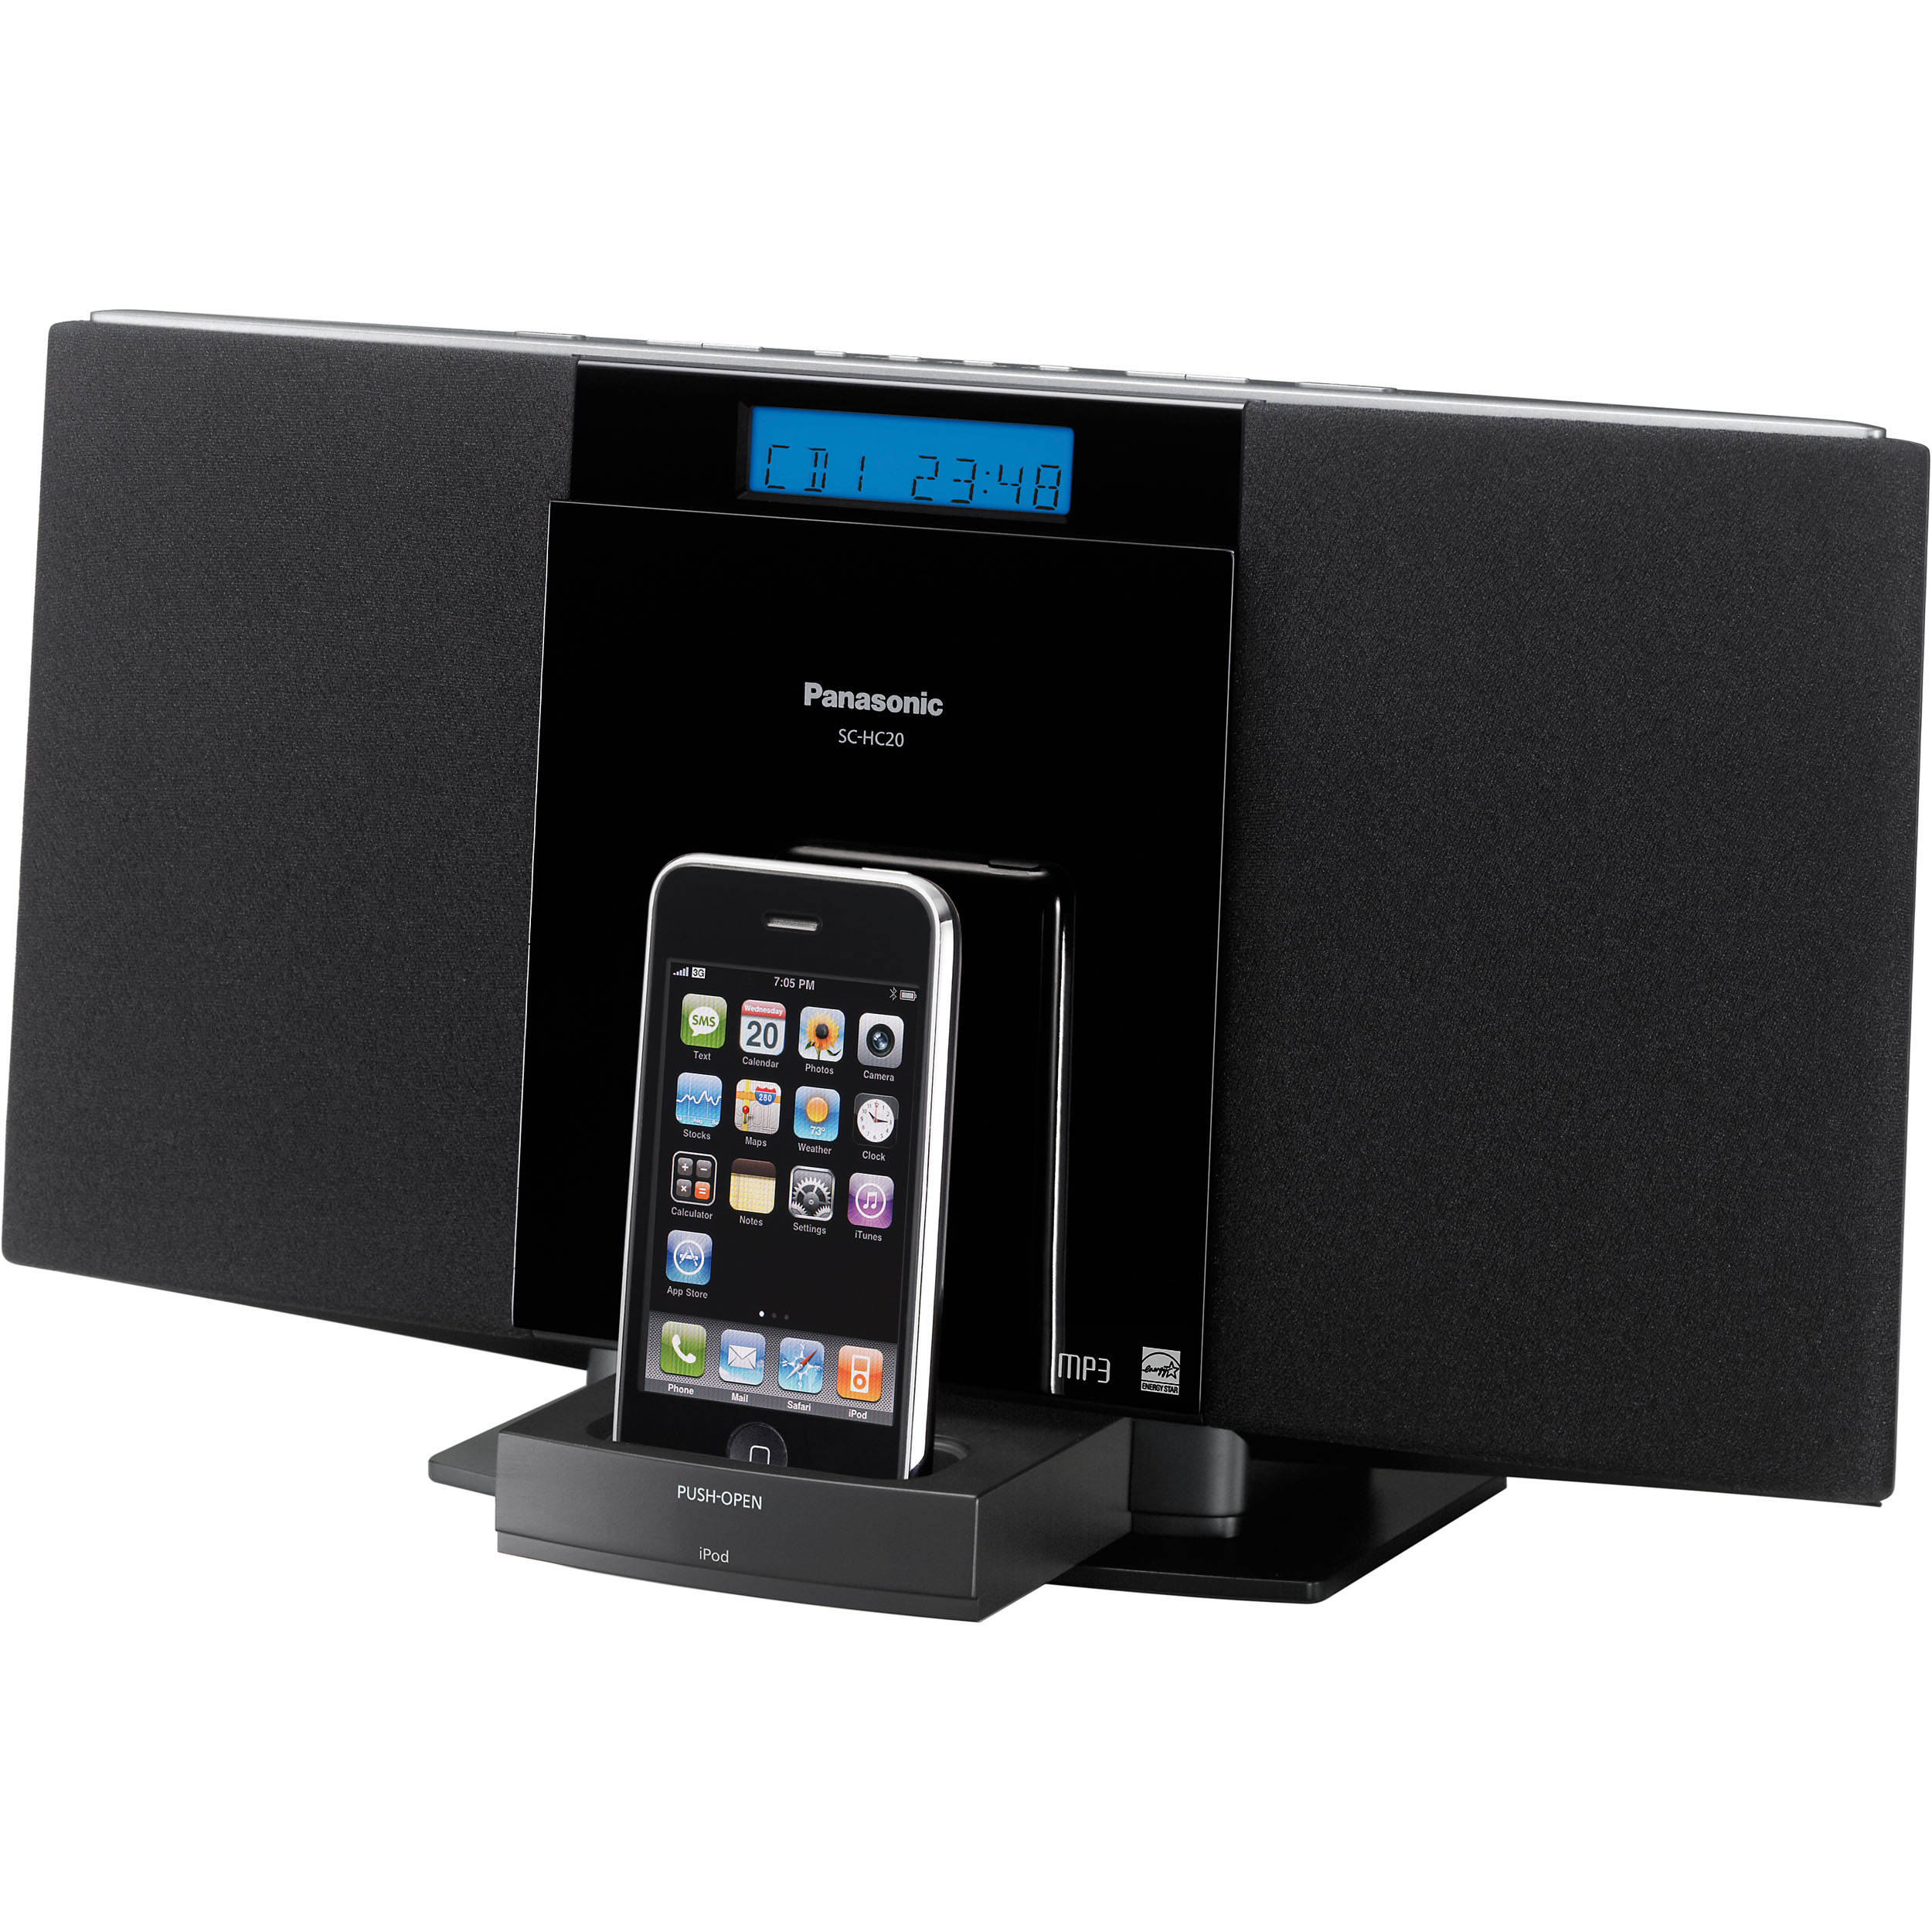 Panasonic SC-HC20 Compact Stereo System